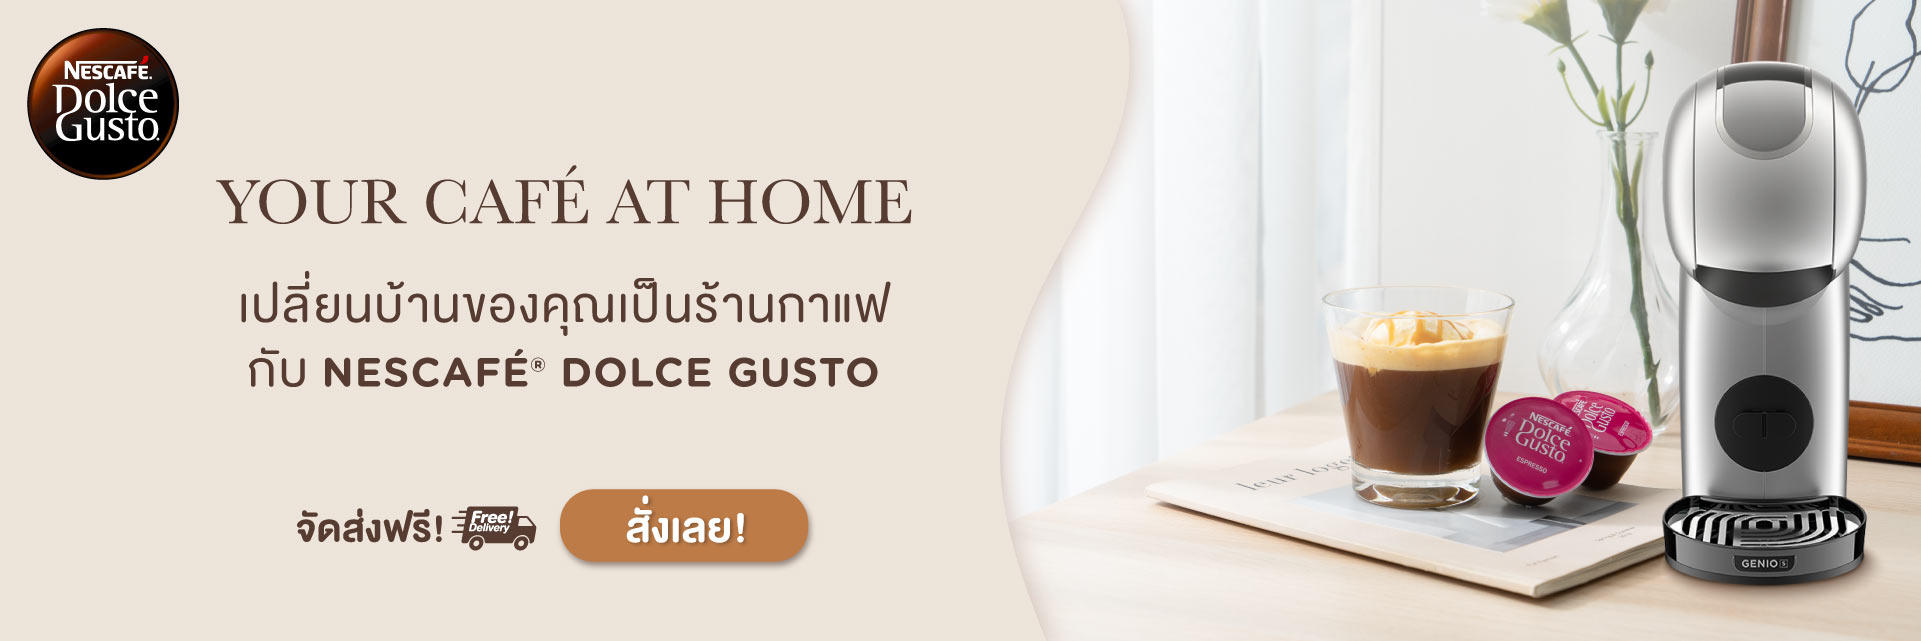 Your Cafe at home